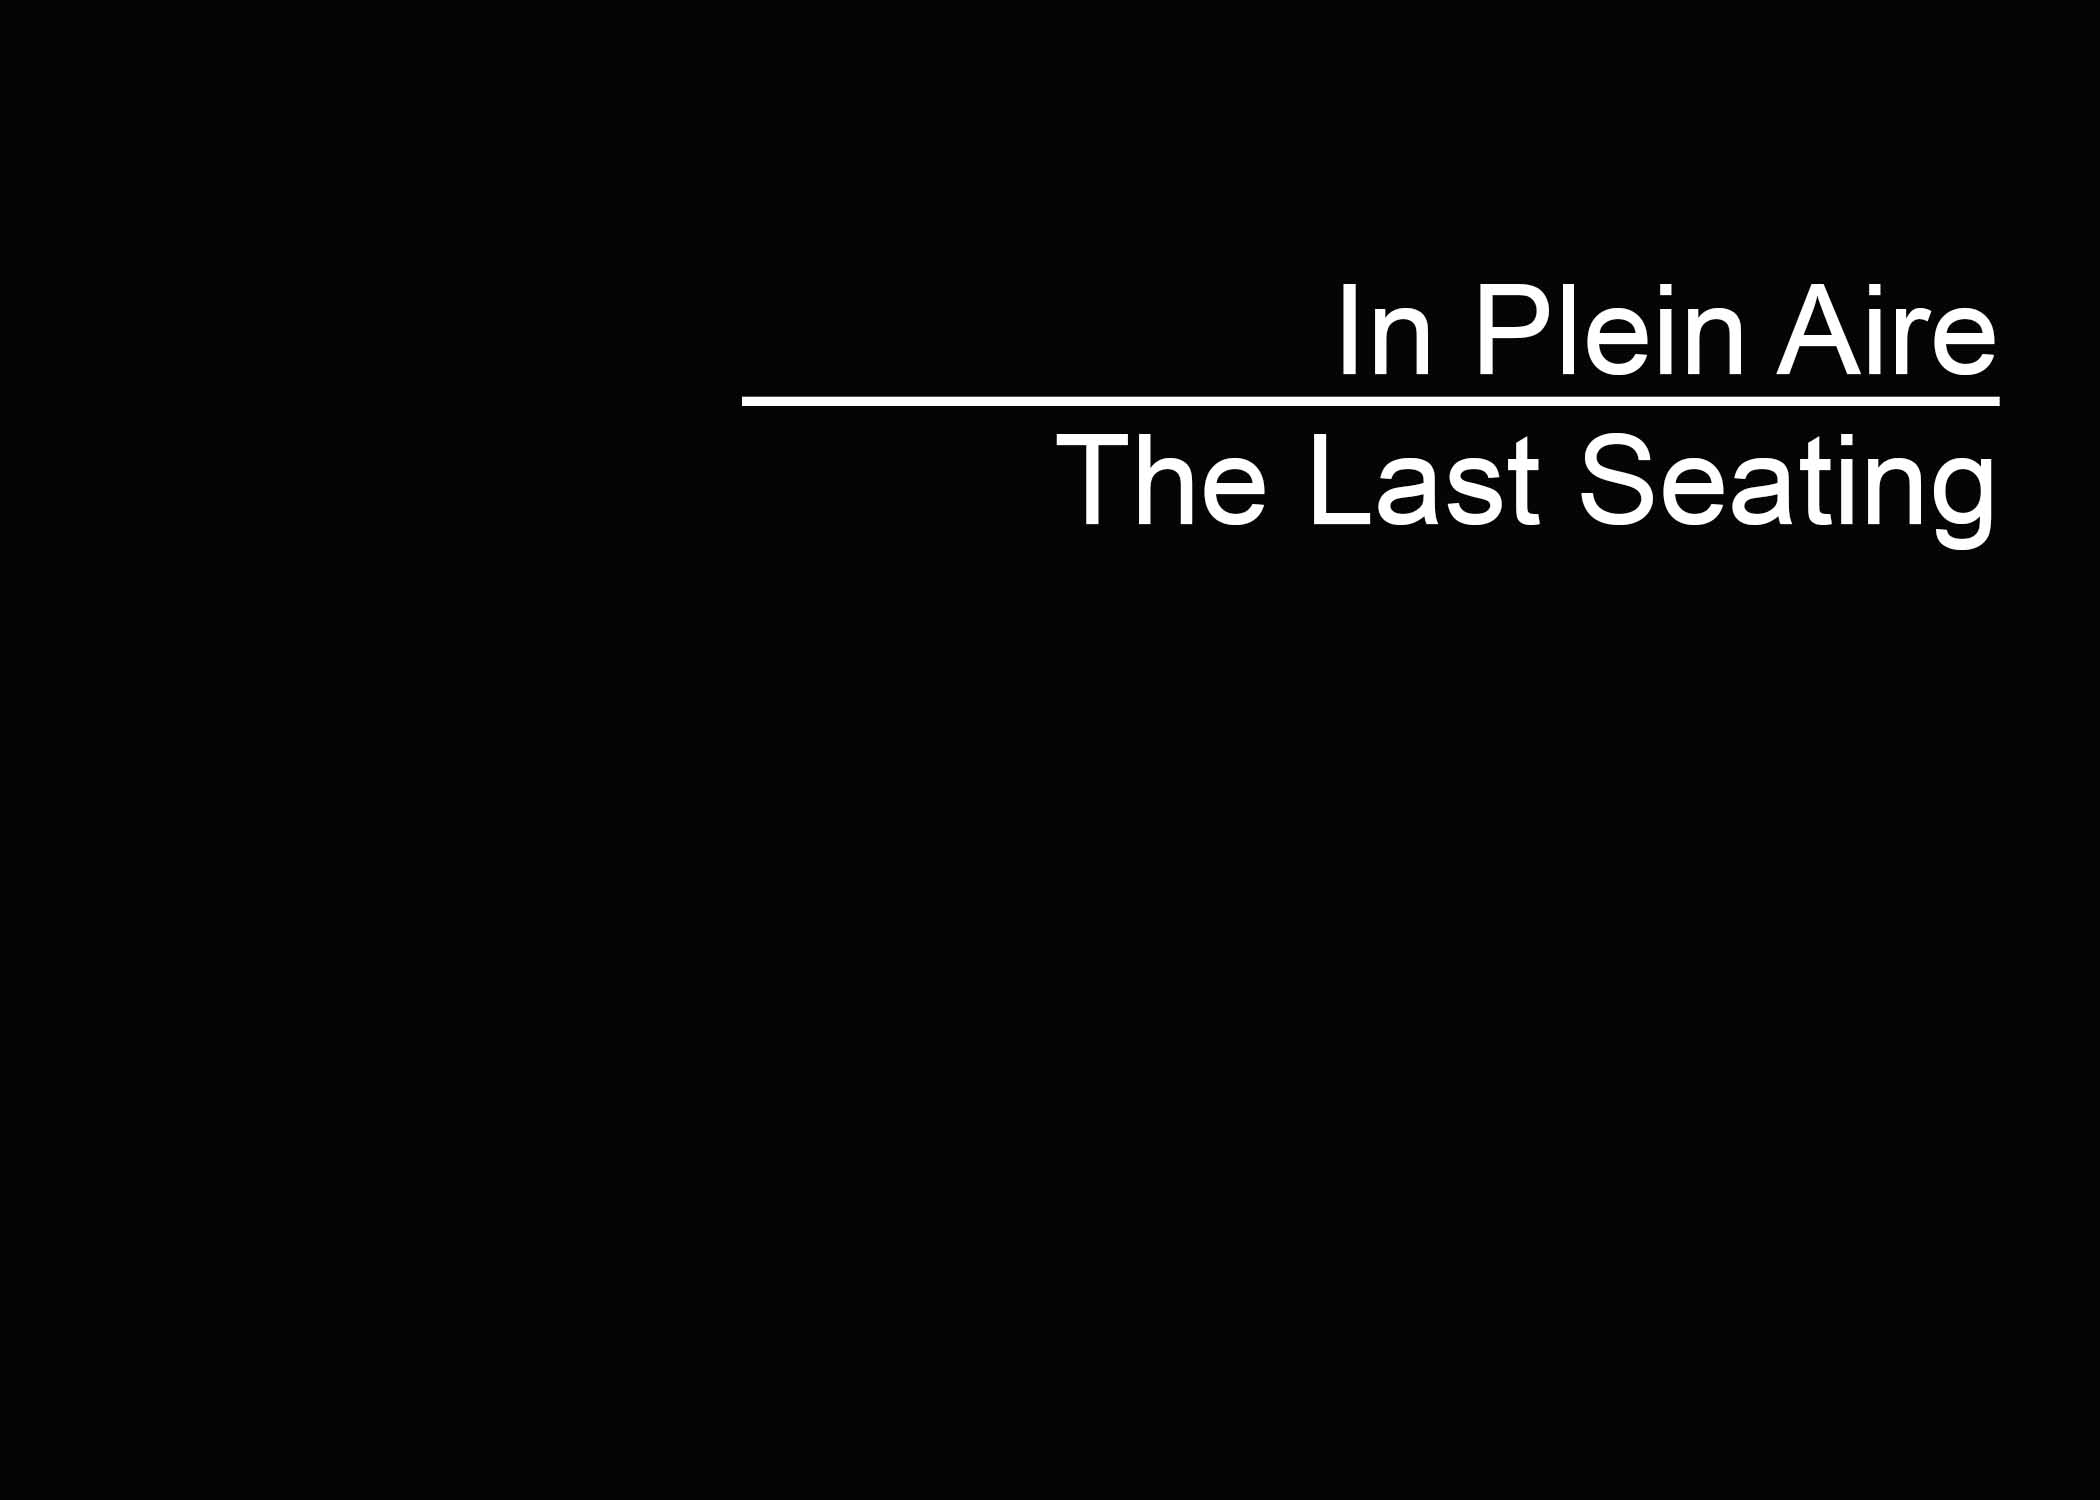 seating-title